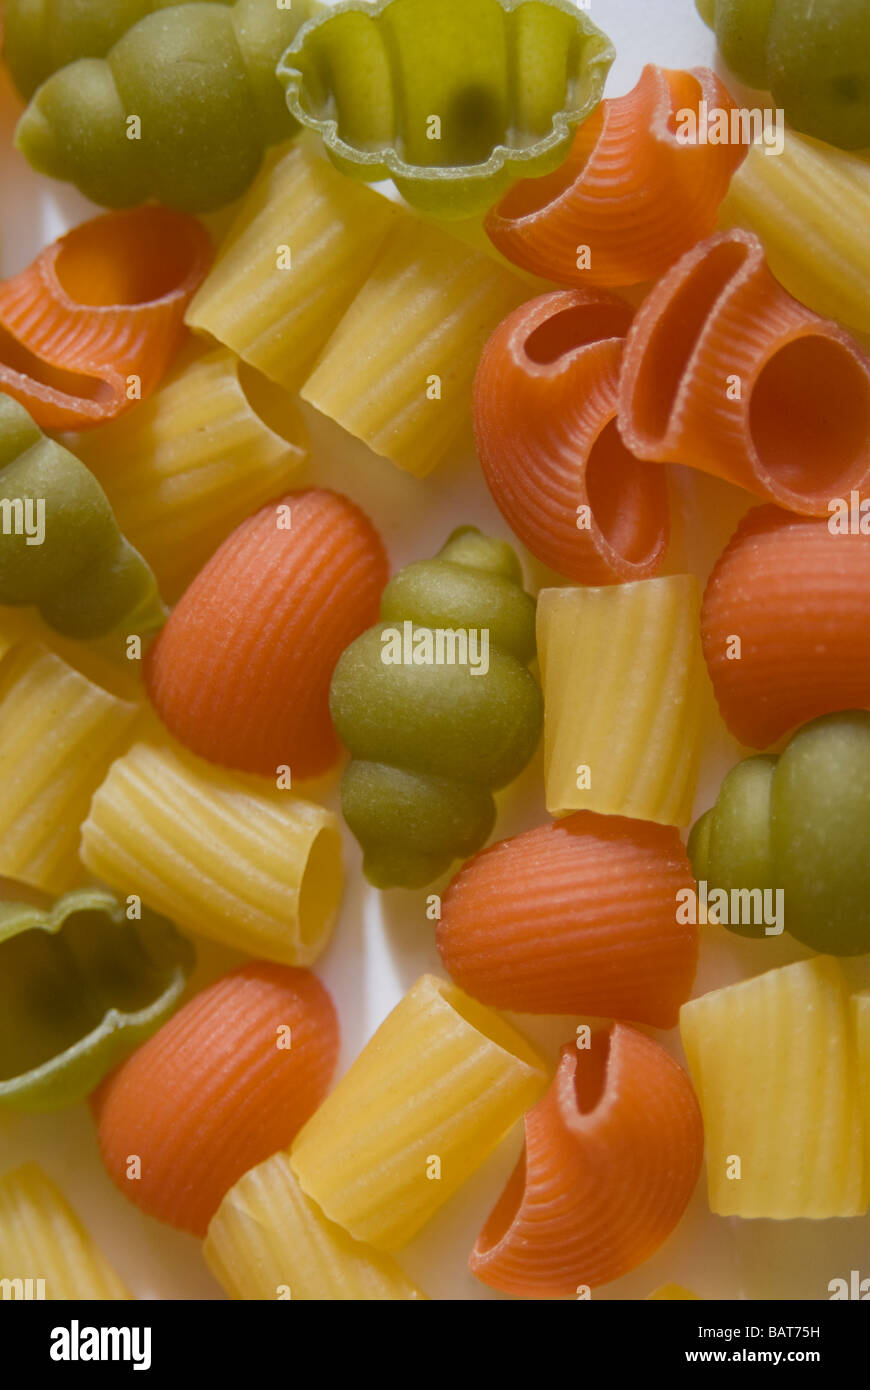 Pasta, colored, various types - Stock Image